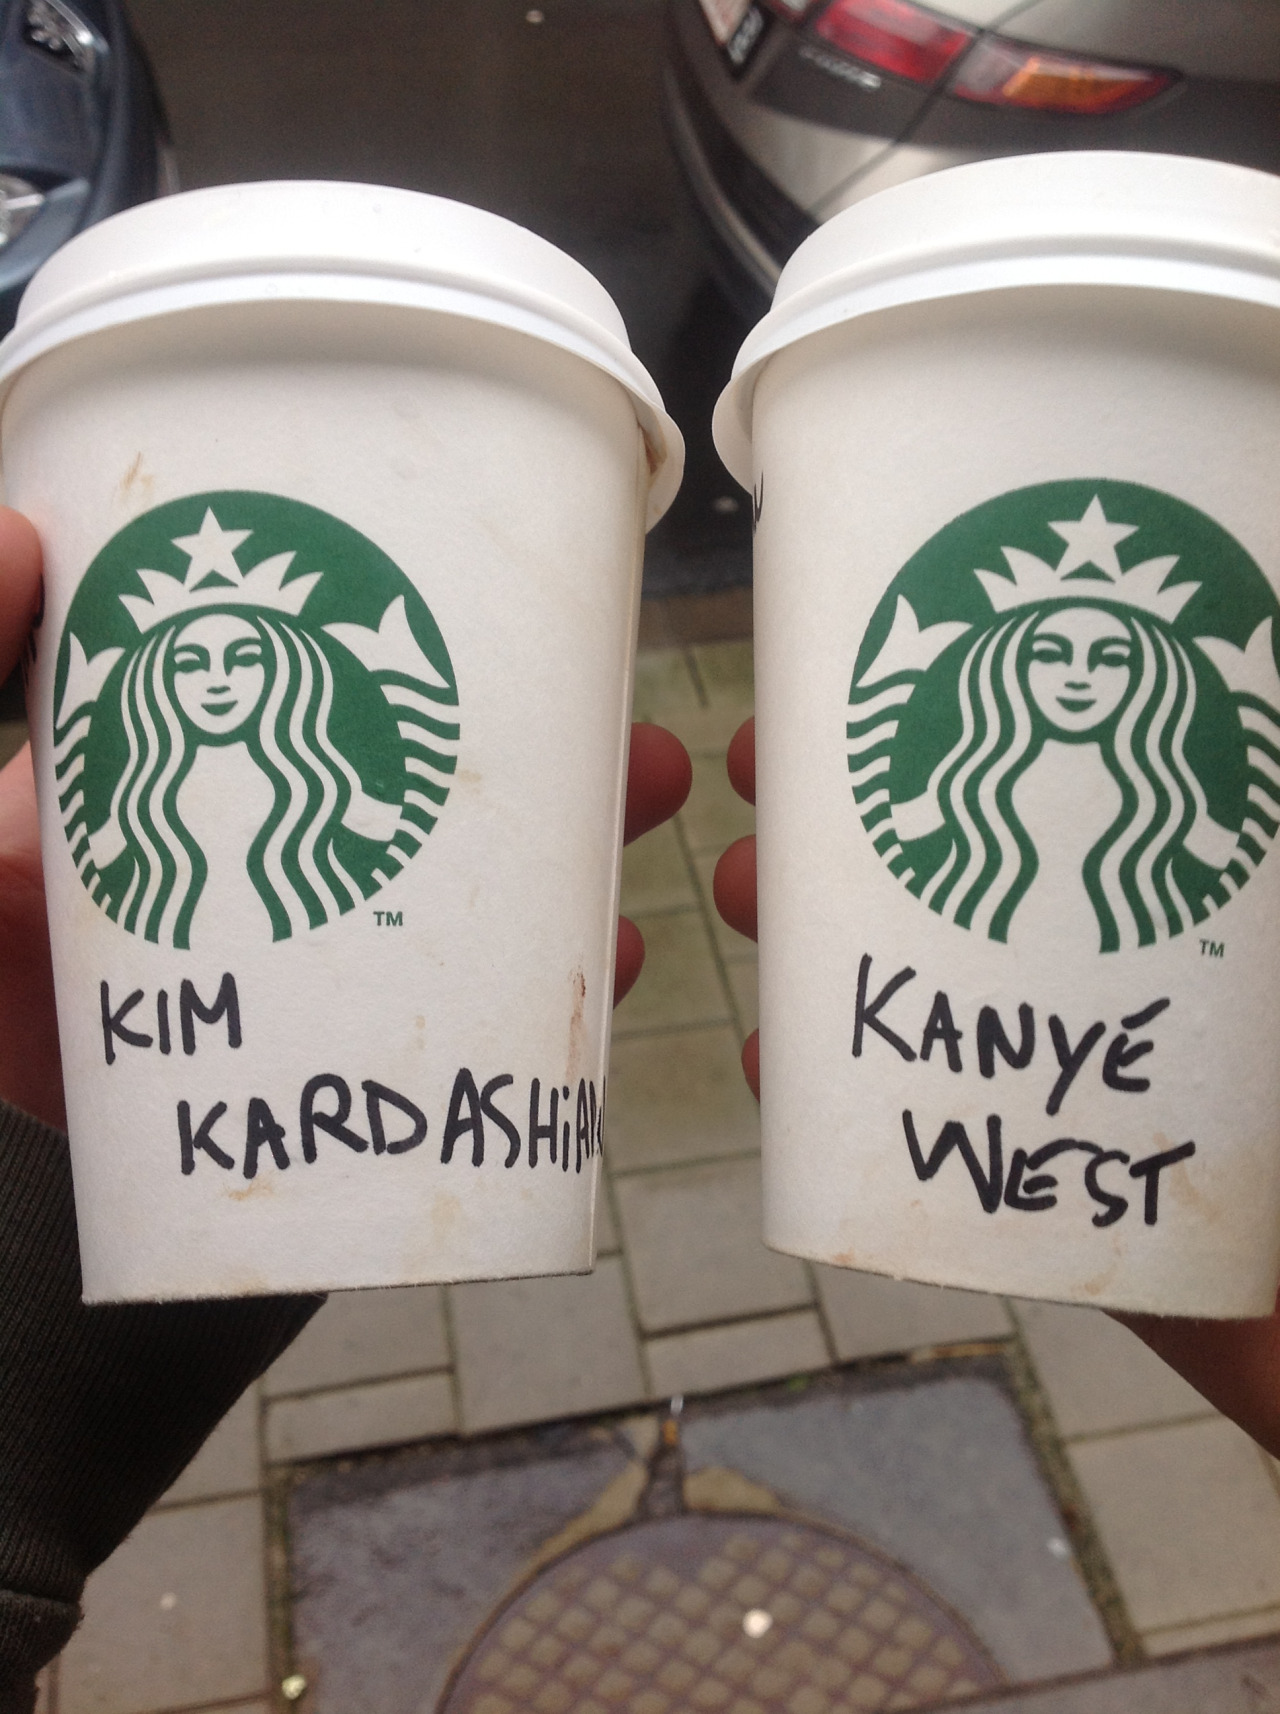 knywst:  Me and my friend drinking Starbucks